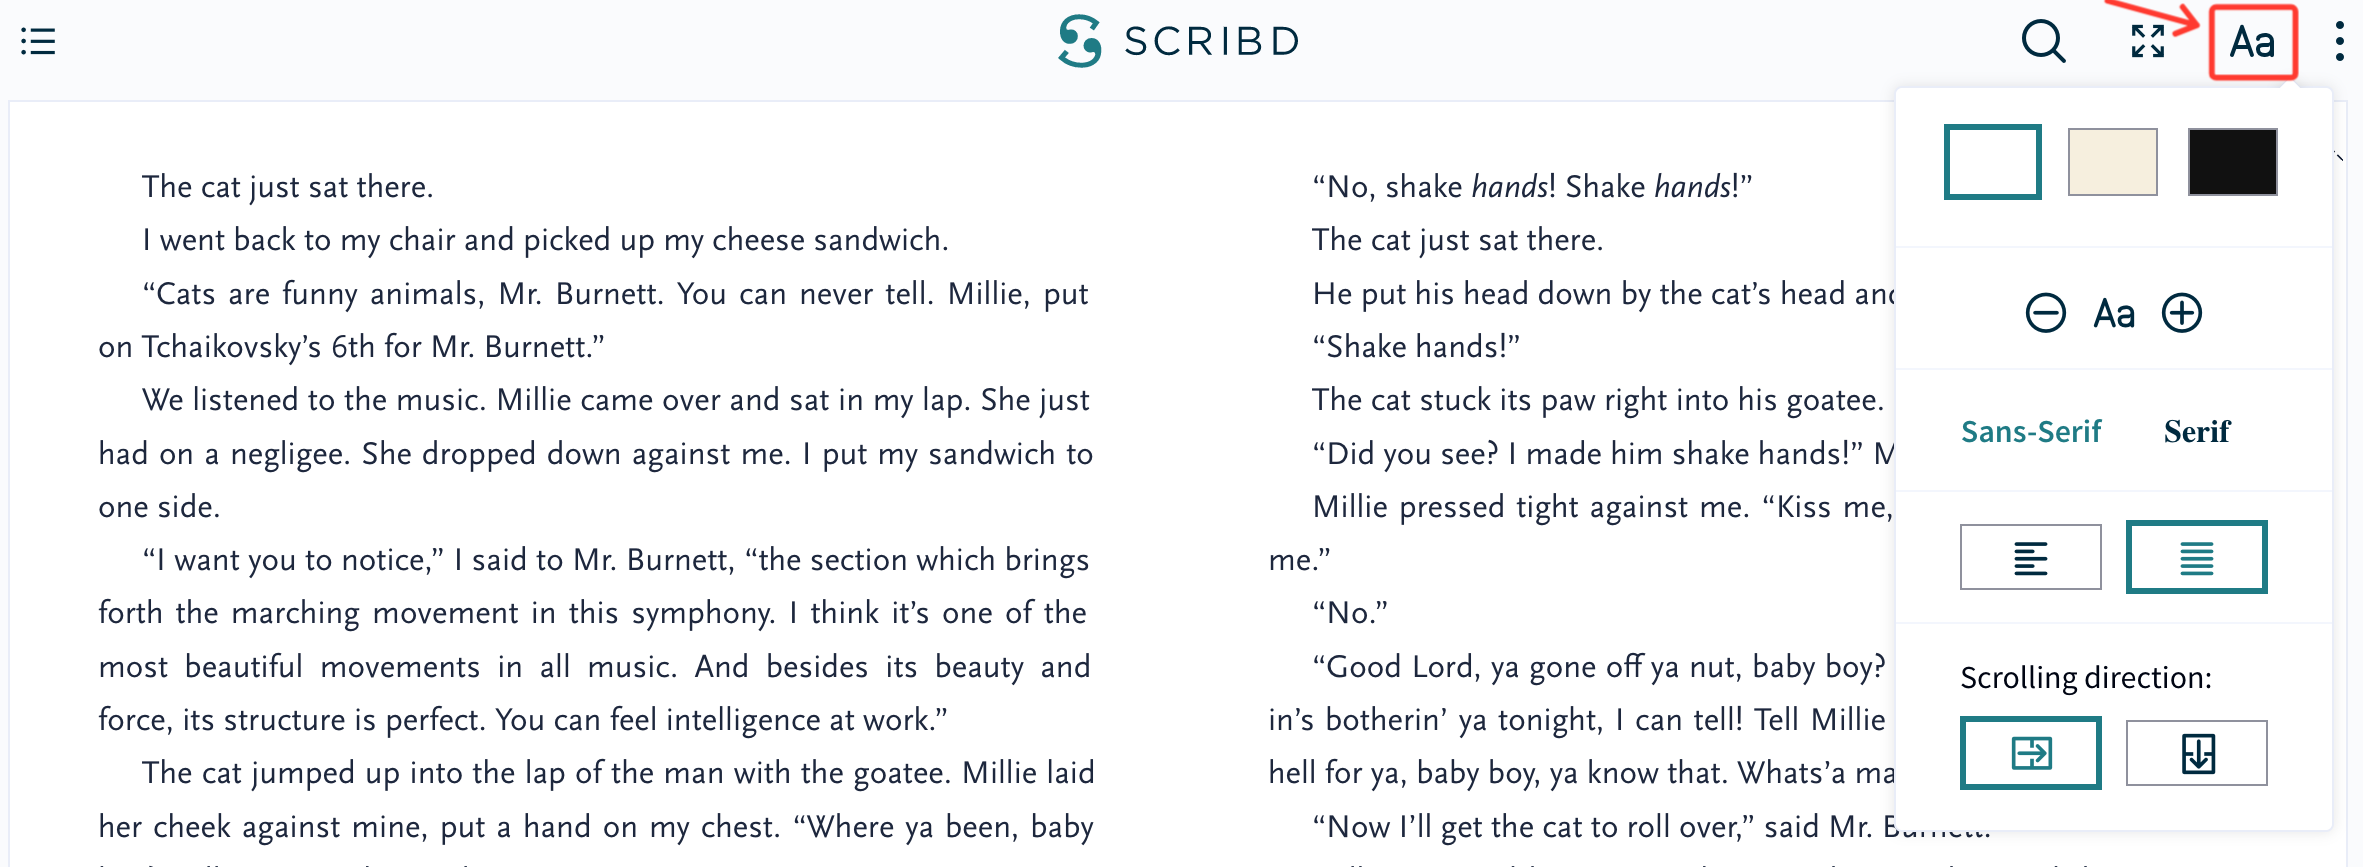 Font size and display options on Scribd com – Scribd Help Center